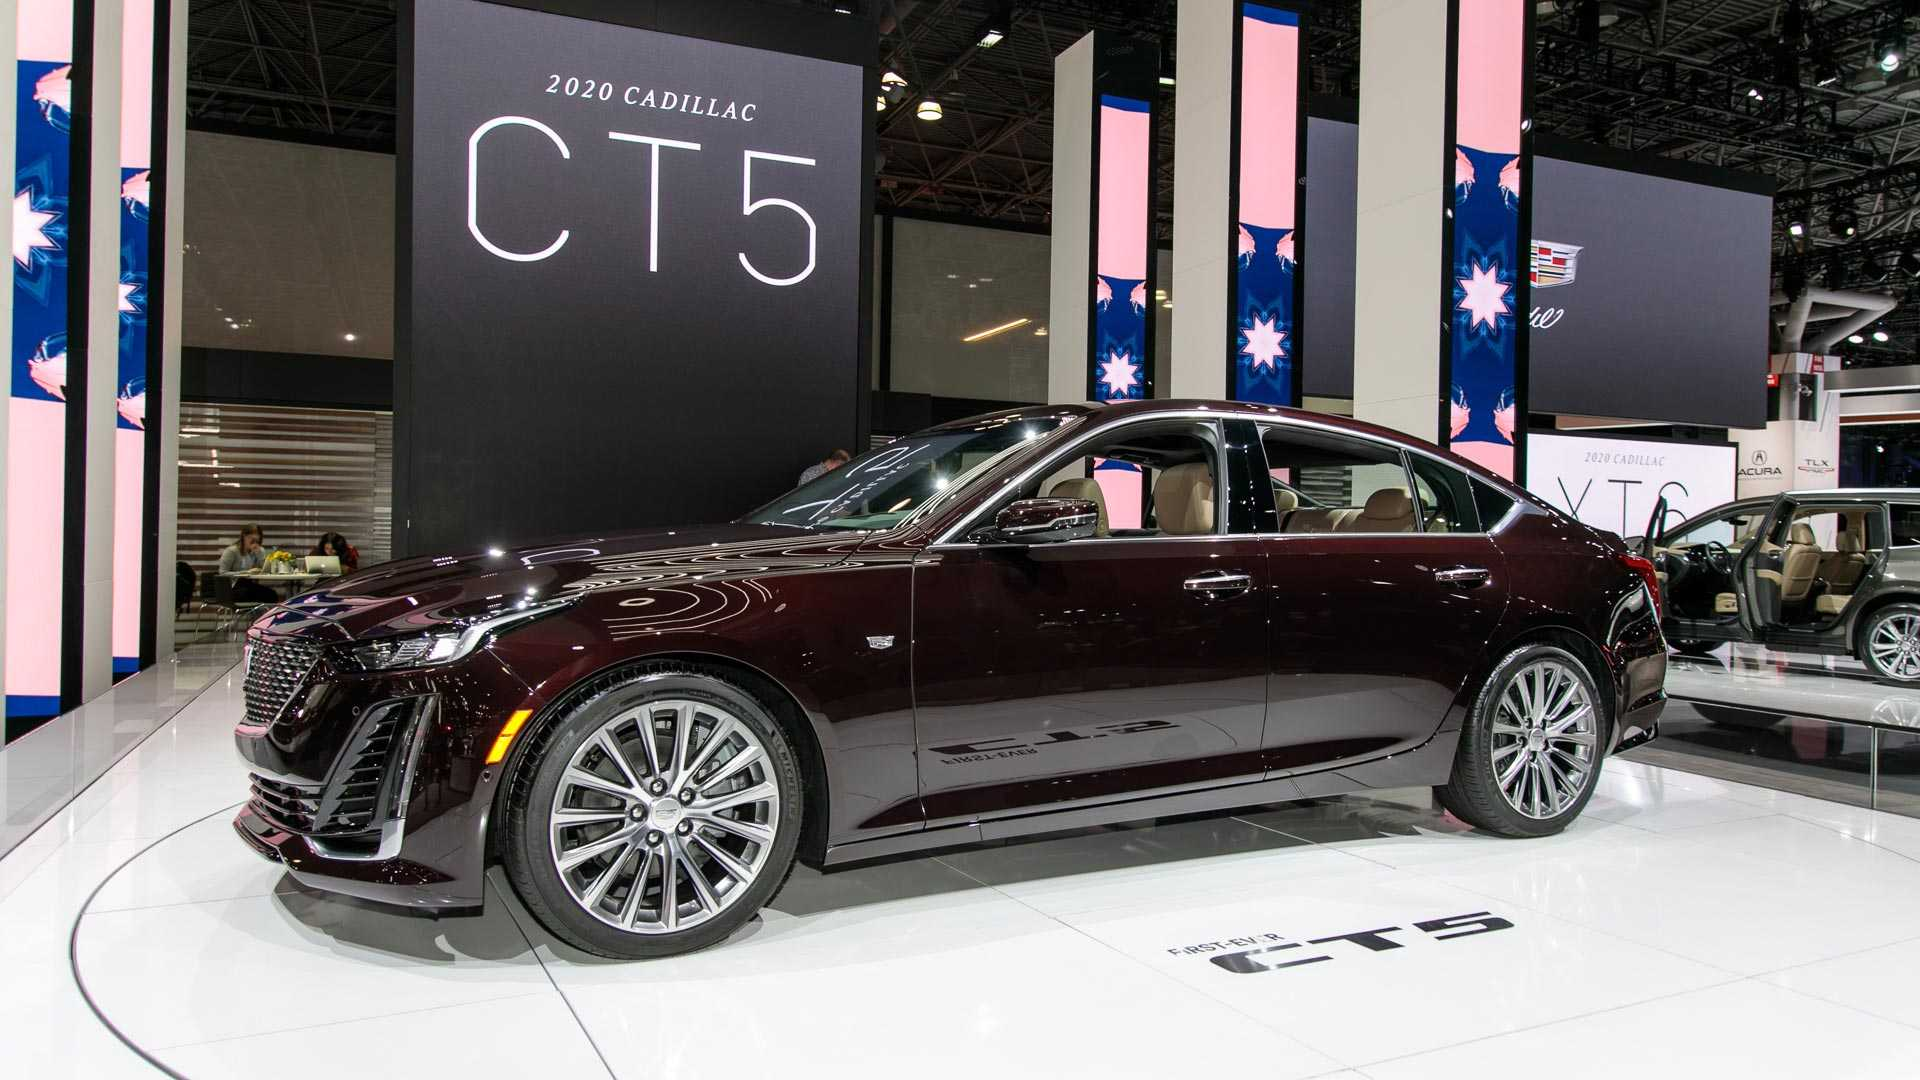 33 New 2020 Cadillac Cts V Horsepower Rumors with 2020 Cadillac Cts V Horsepower